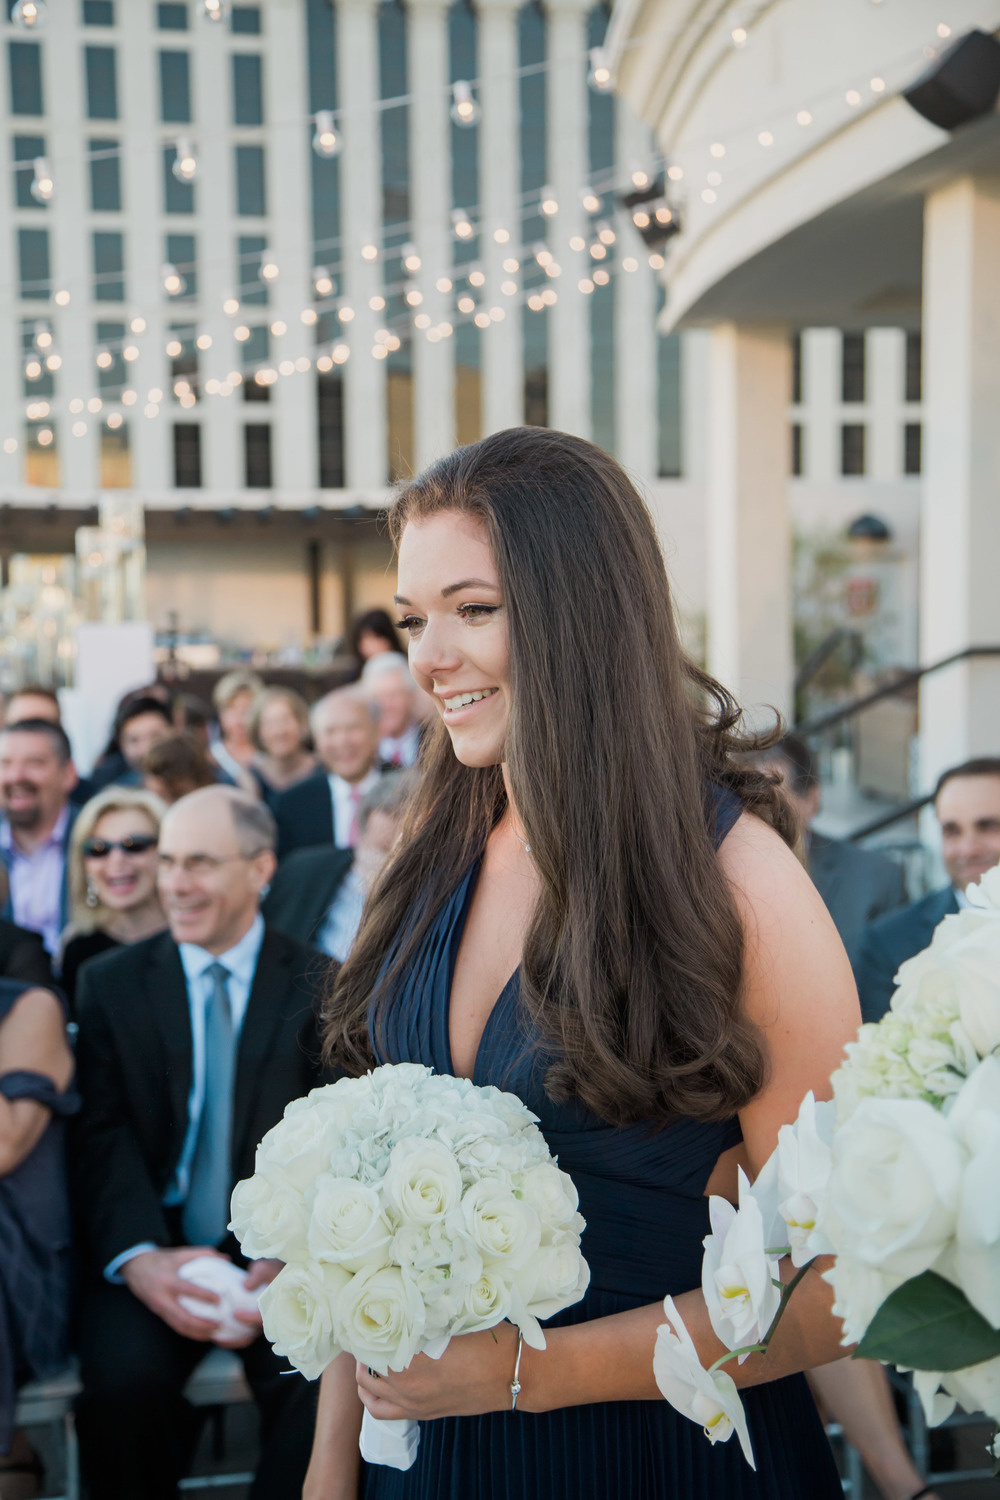 The bride's daughter was her maid of honor.  Vendor Credits:    Wedding in the   Nobu Villa    |    Las Vegas Wedding Planner   Andrea Eppolito     |    Photography by   Adam Frazier    |    Videography by   Pure Light Creative    |    Floral and Decor by   Destinations by Design    |  Lighting by LED Unplugged  |    Music by   DJ Mike Fox